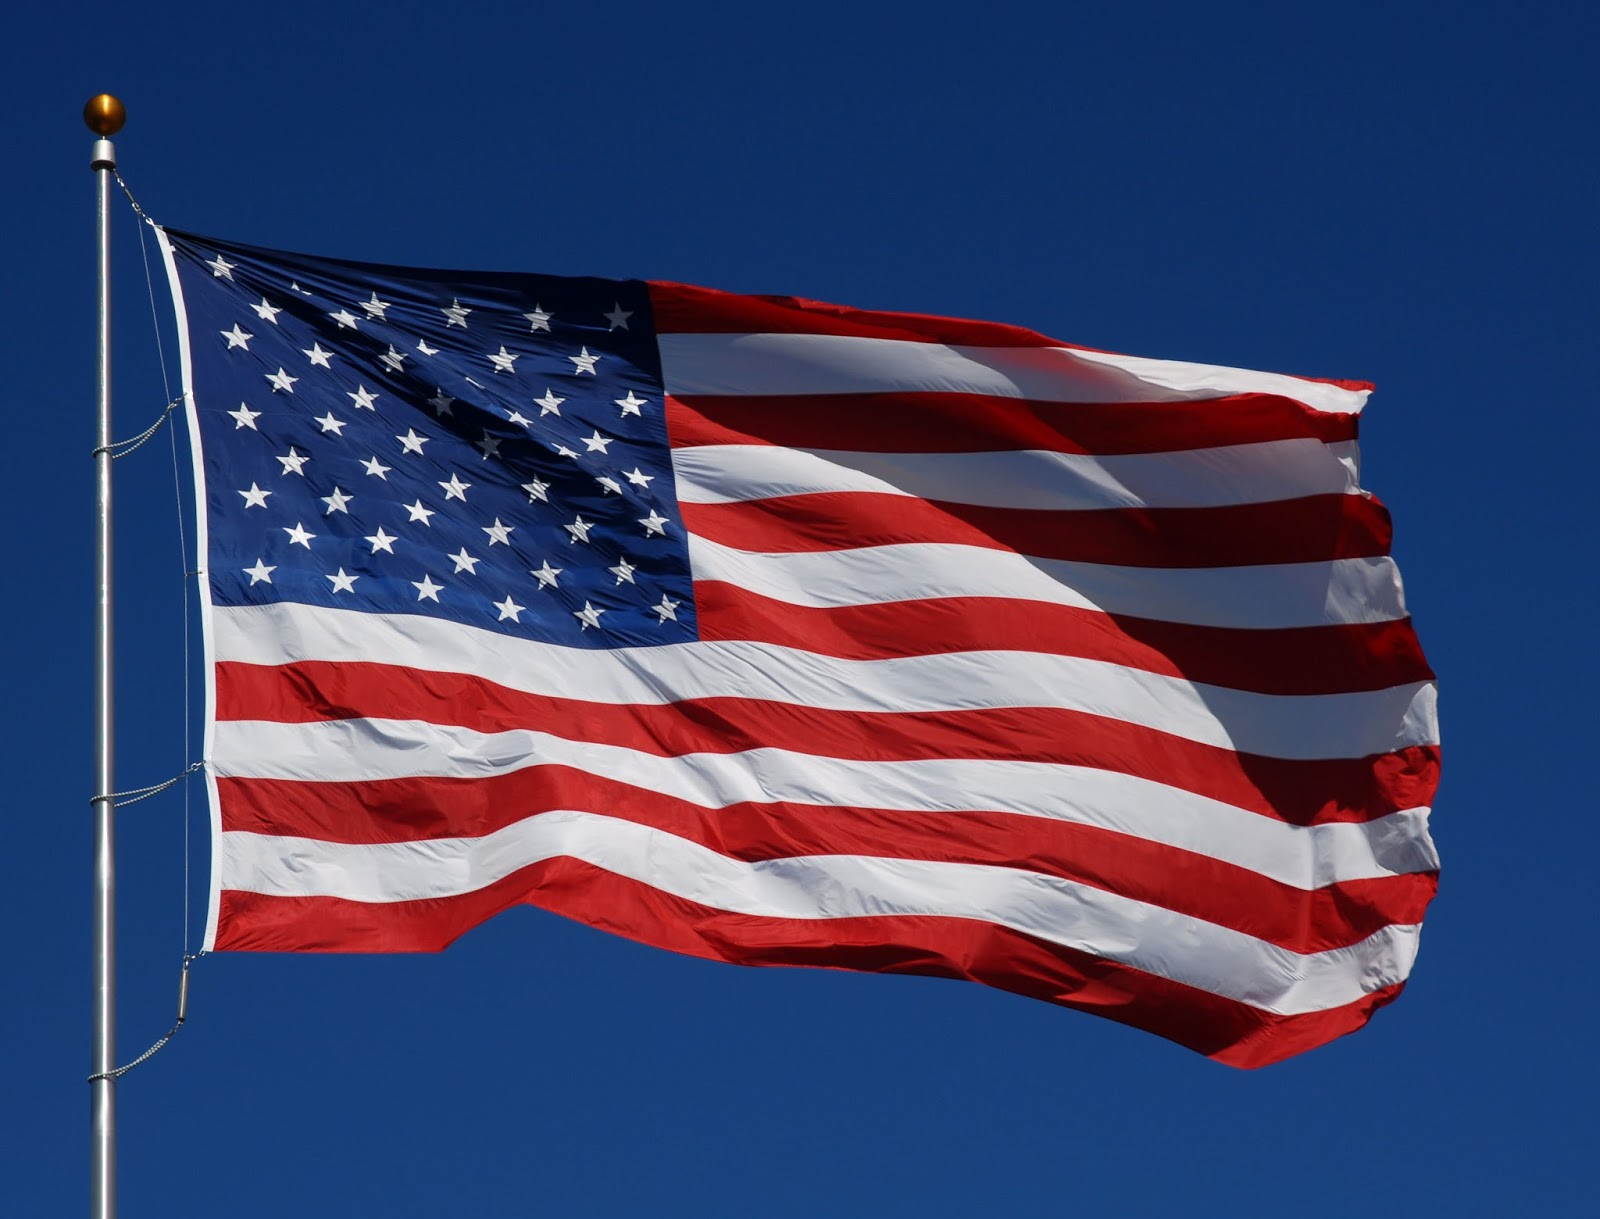 wallpaper american flag hd wallpaper old american flag with black 1600x1219